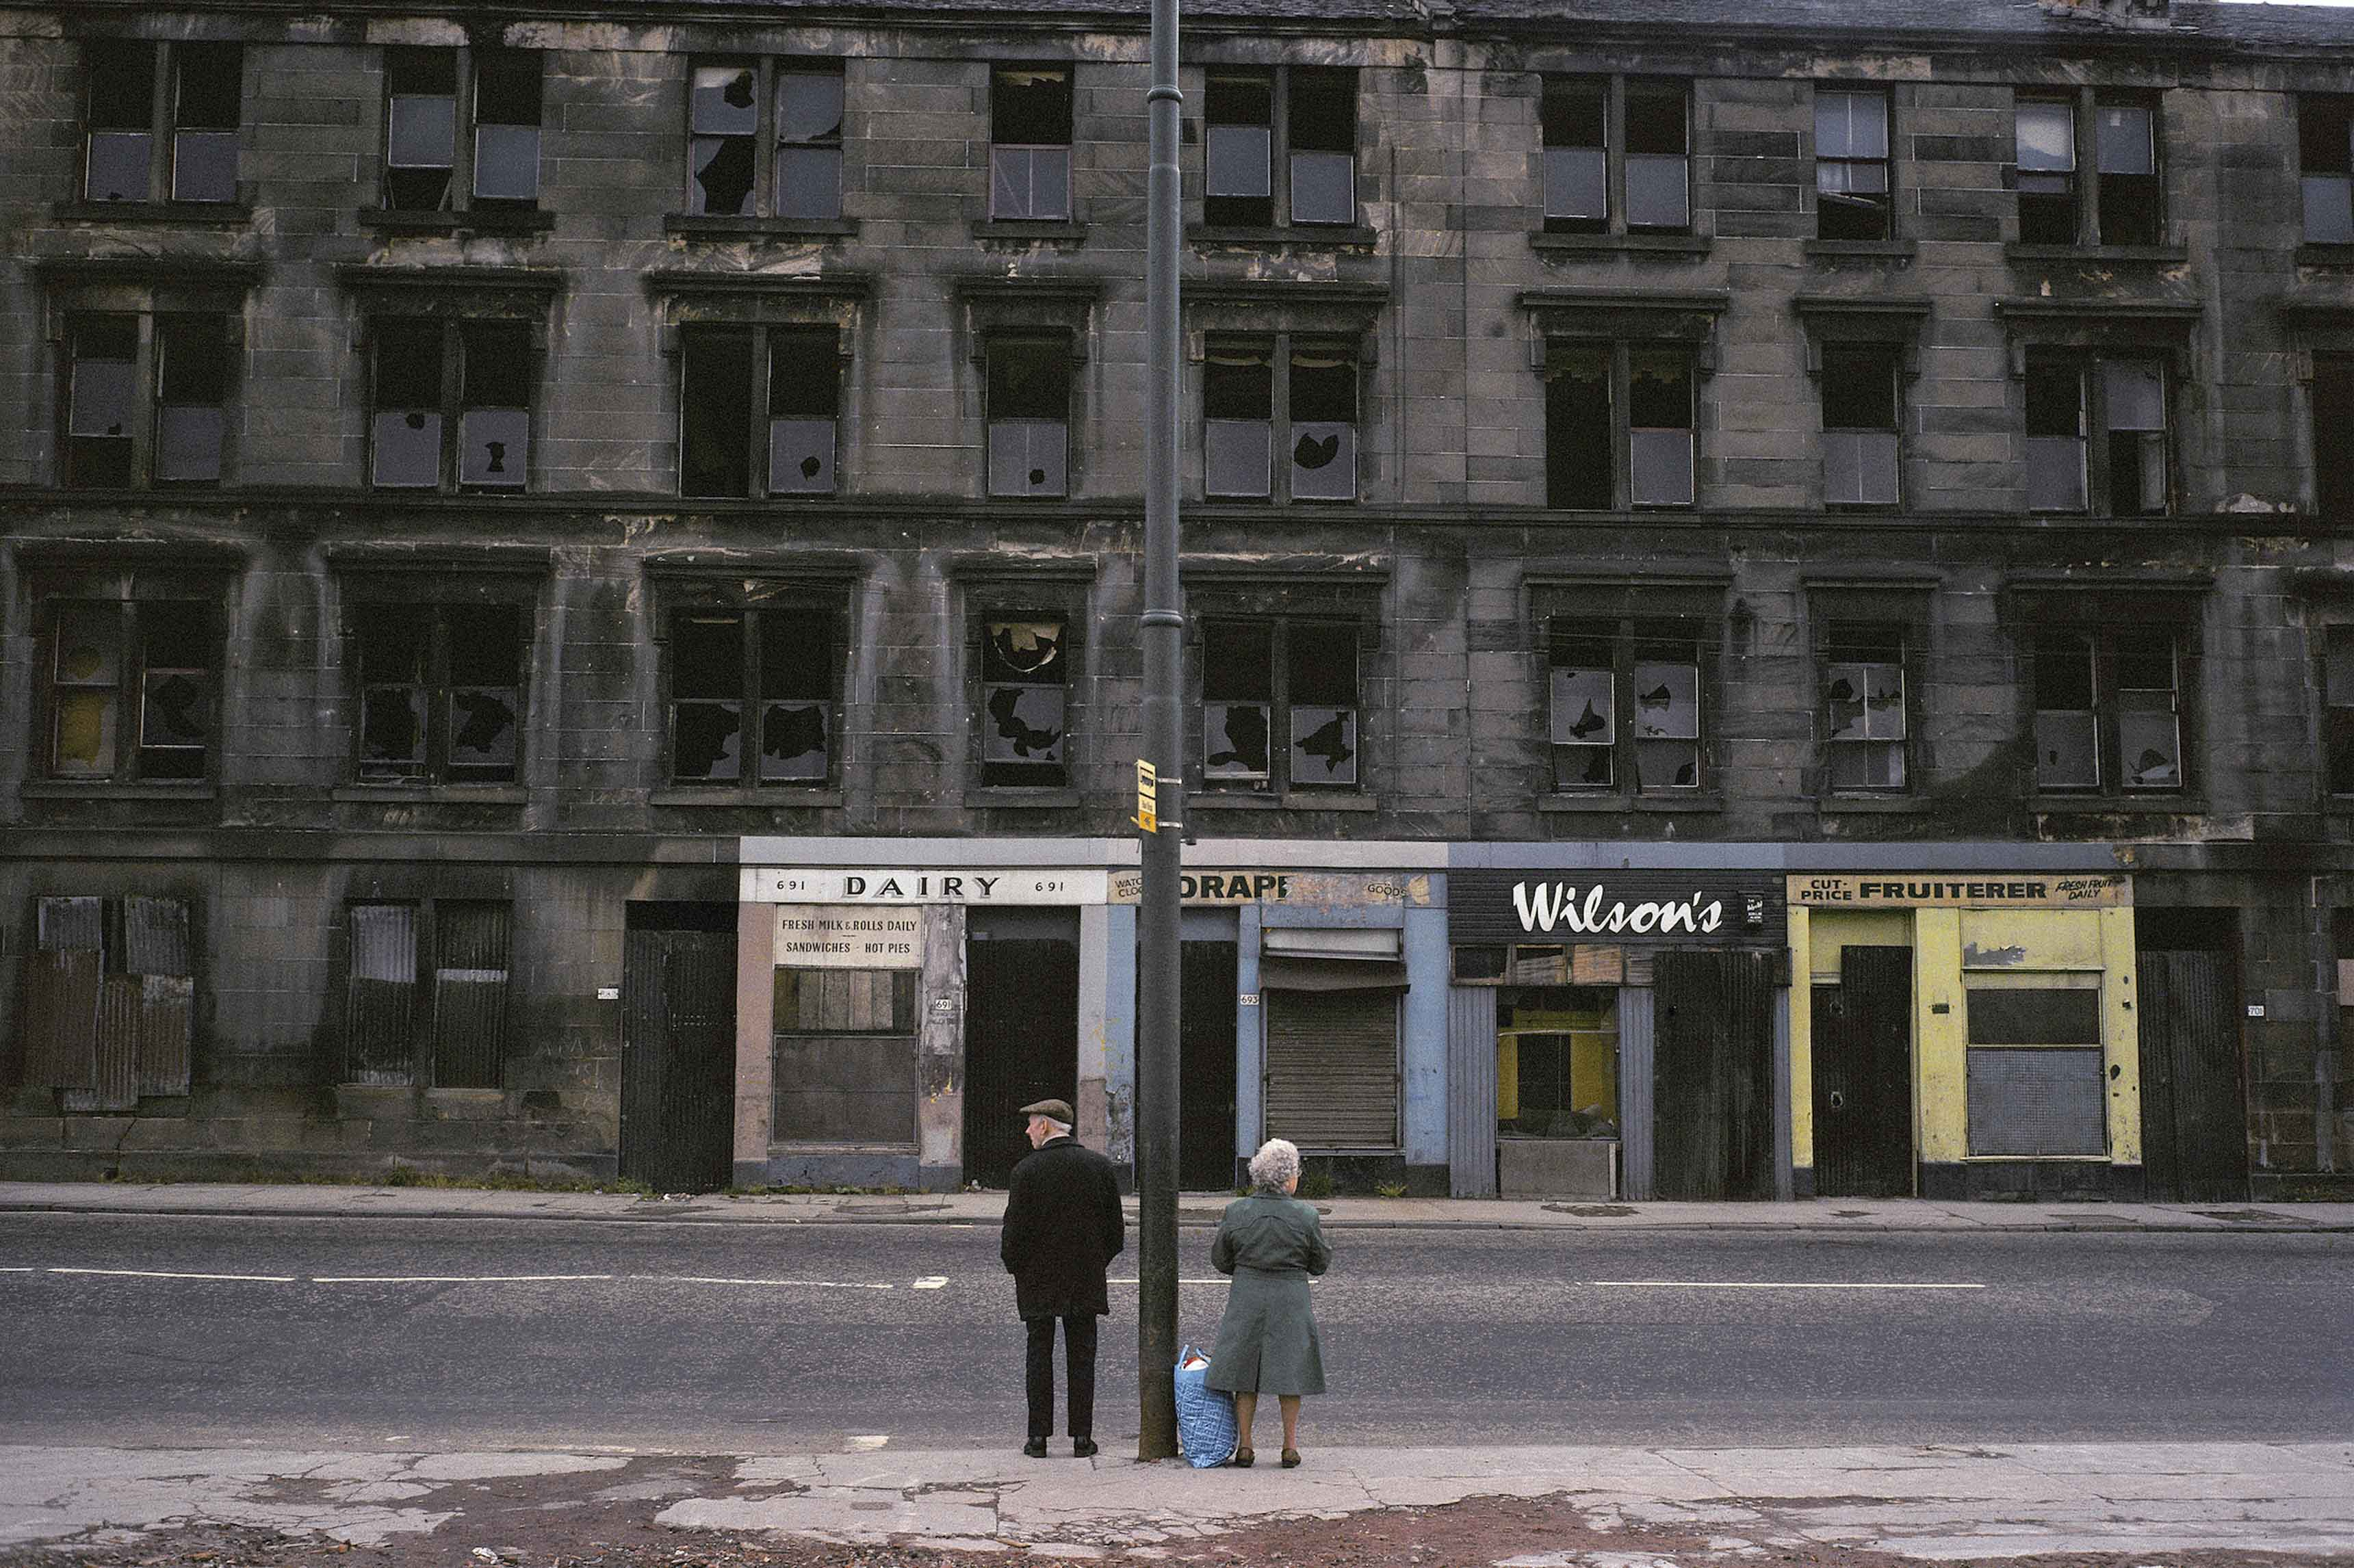 Glasgow, Écosse, 1980 © Raymond Depardon / Magnum Photos